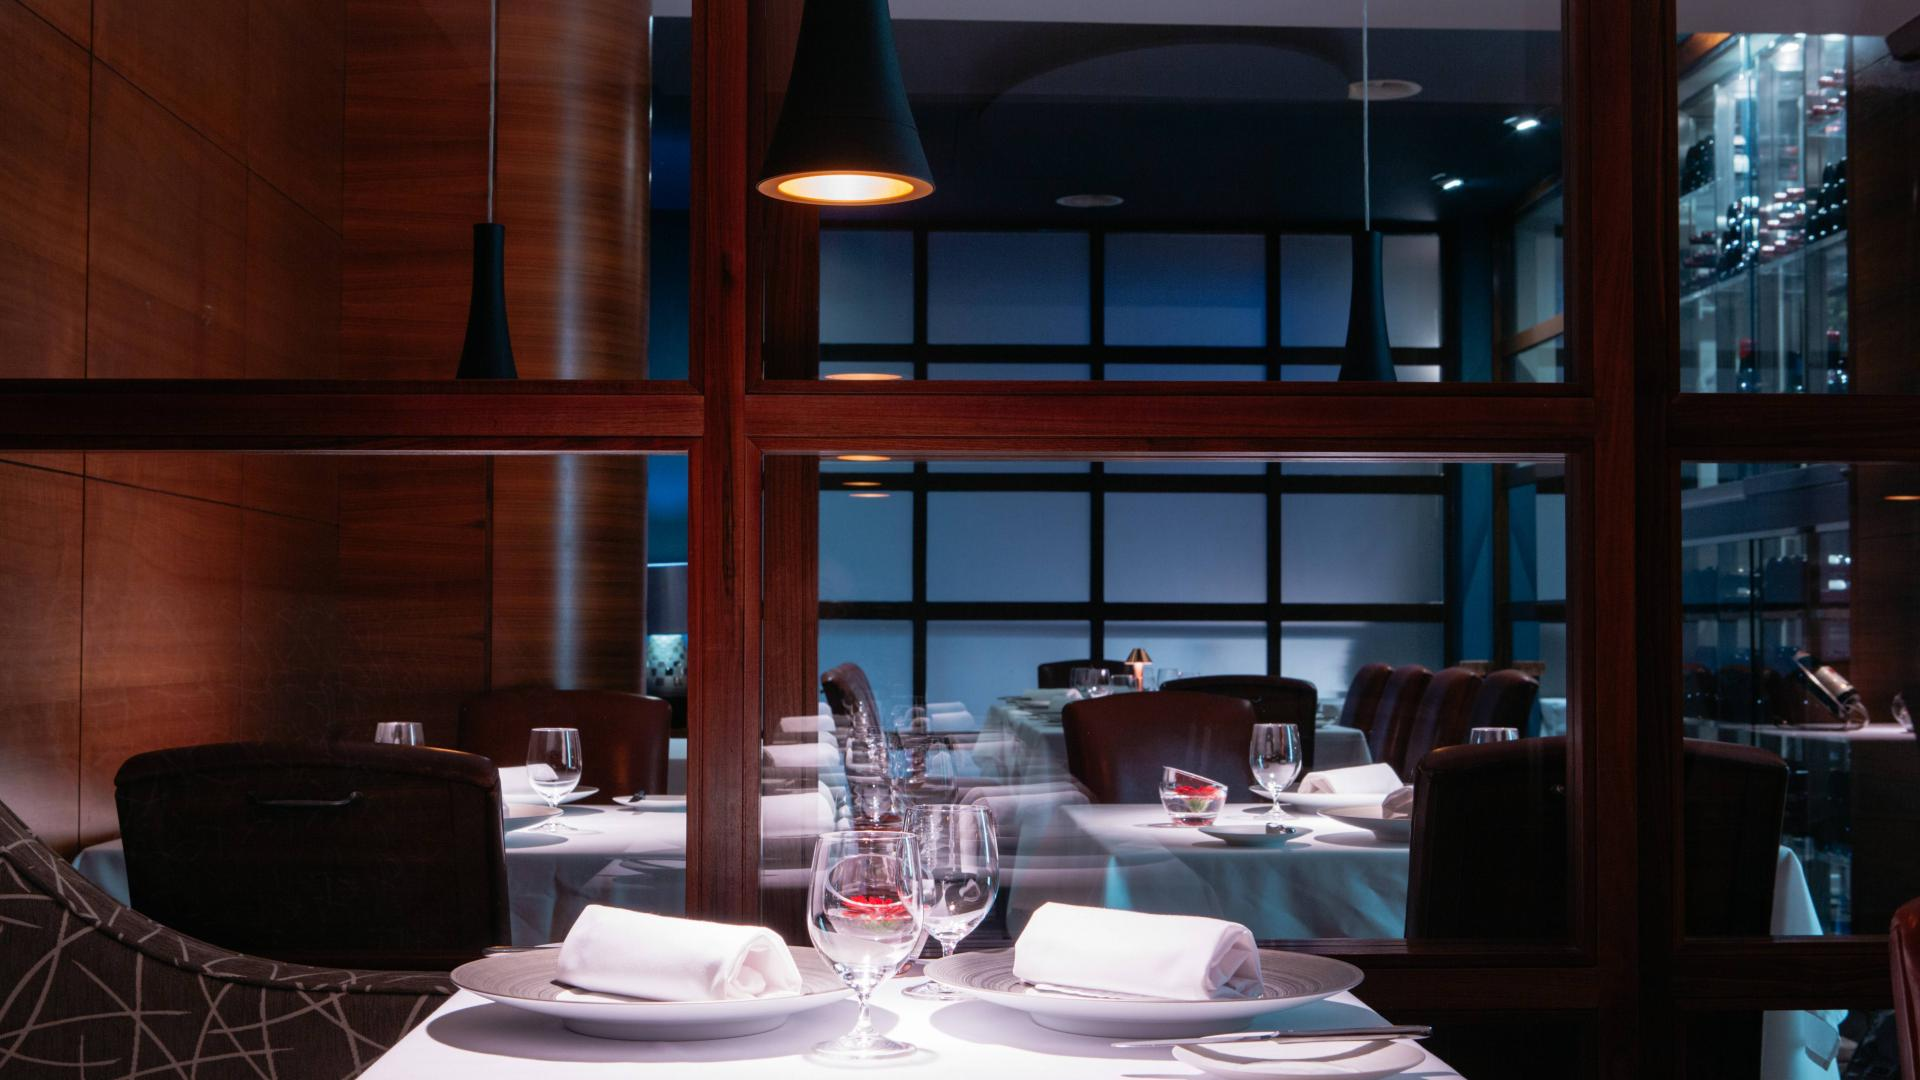 Things to do in Jersey: a table at Bohemia restaurant